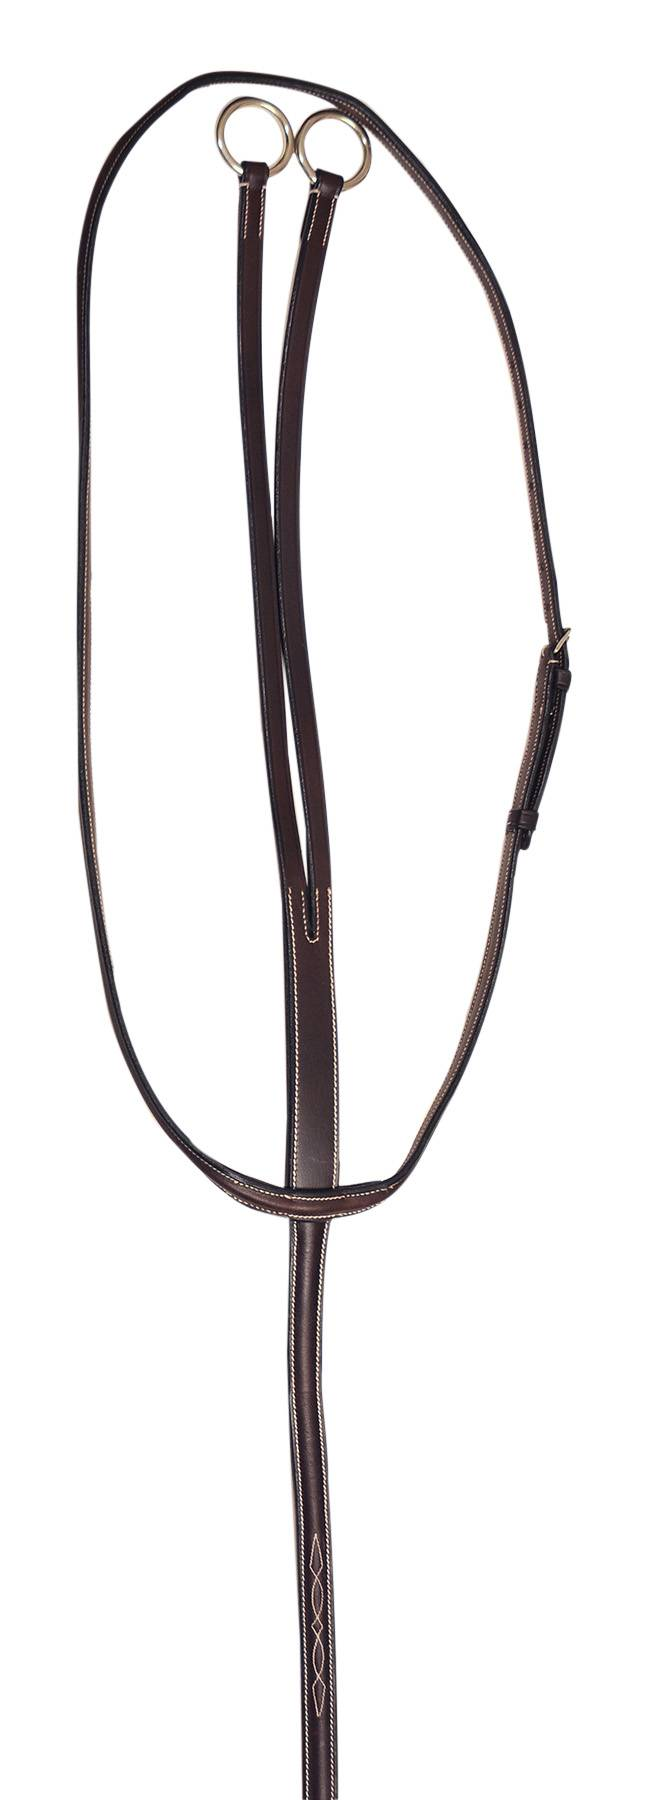 Treadstone Windeck Fancy Raised Running Martingale - Pony